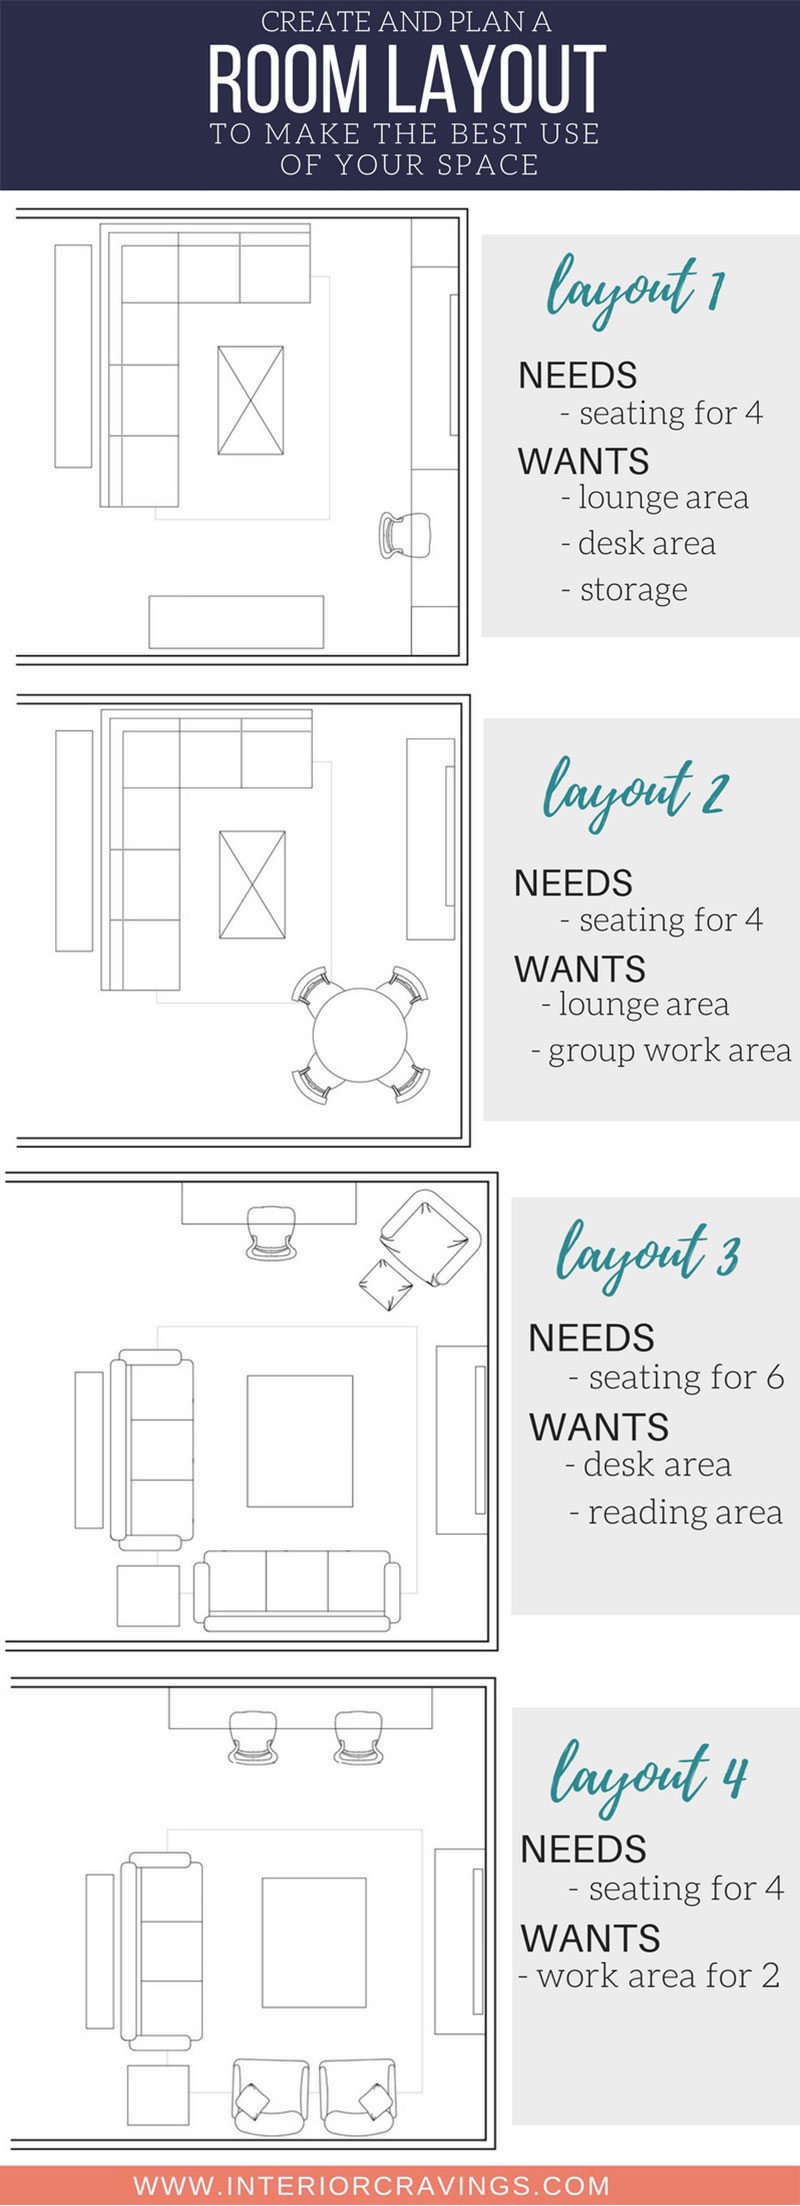 interior cravings room layout options and furniture layout for family room